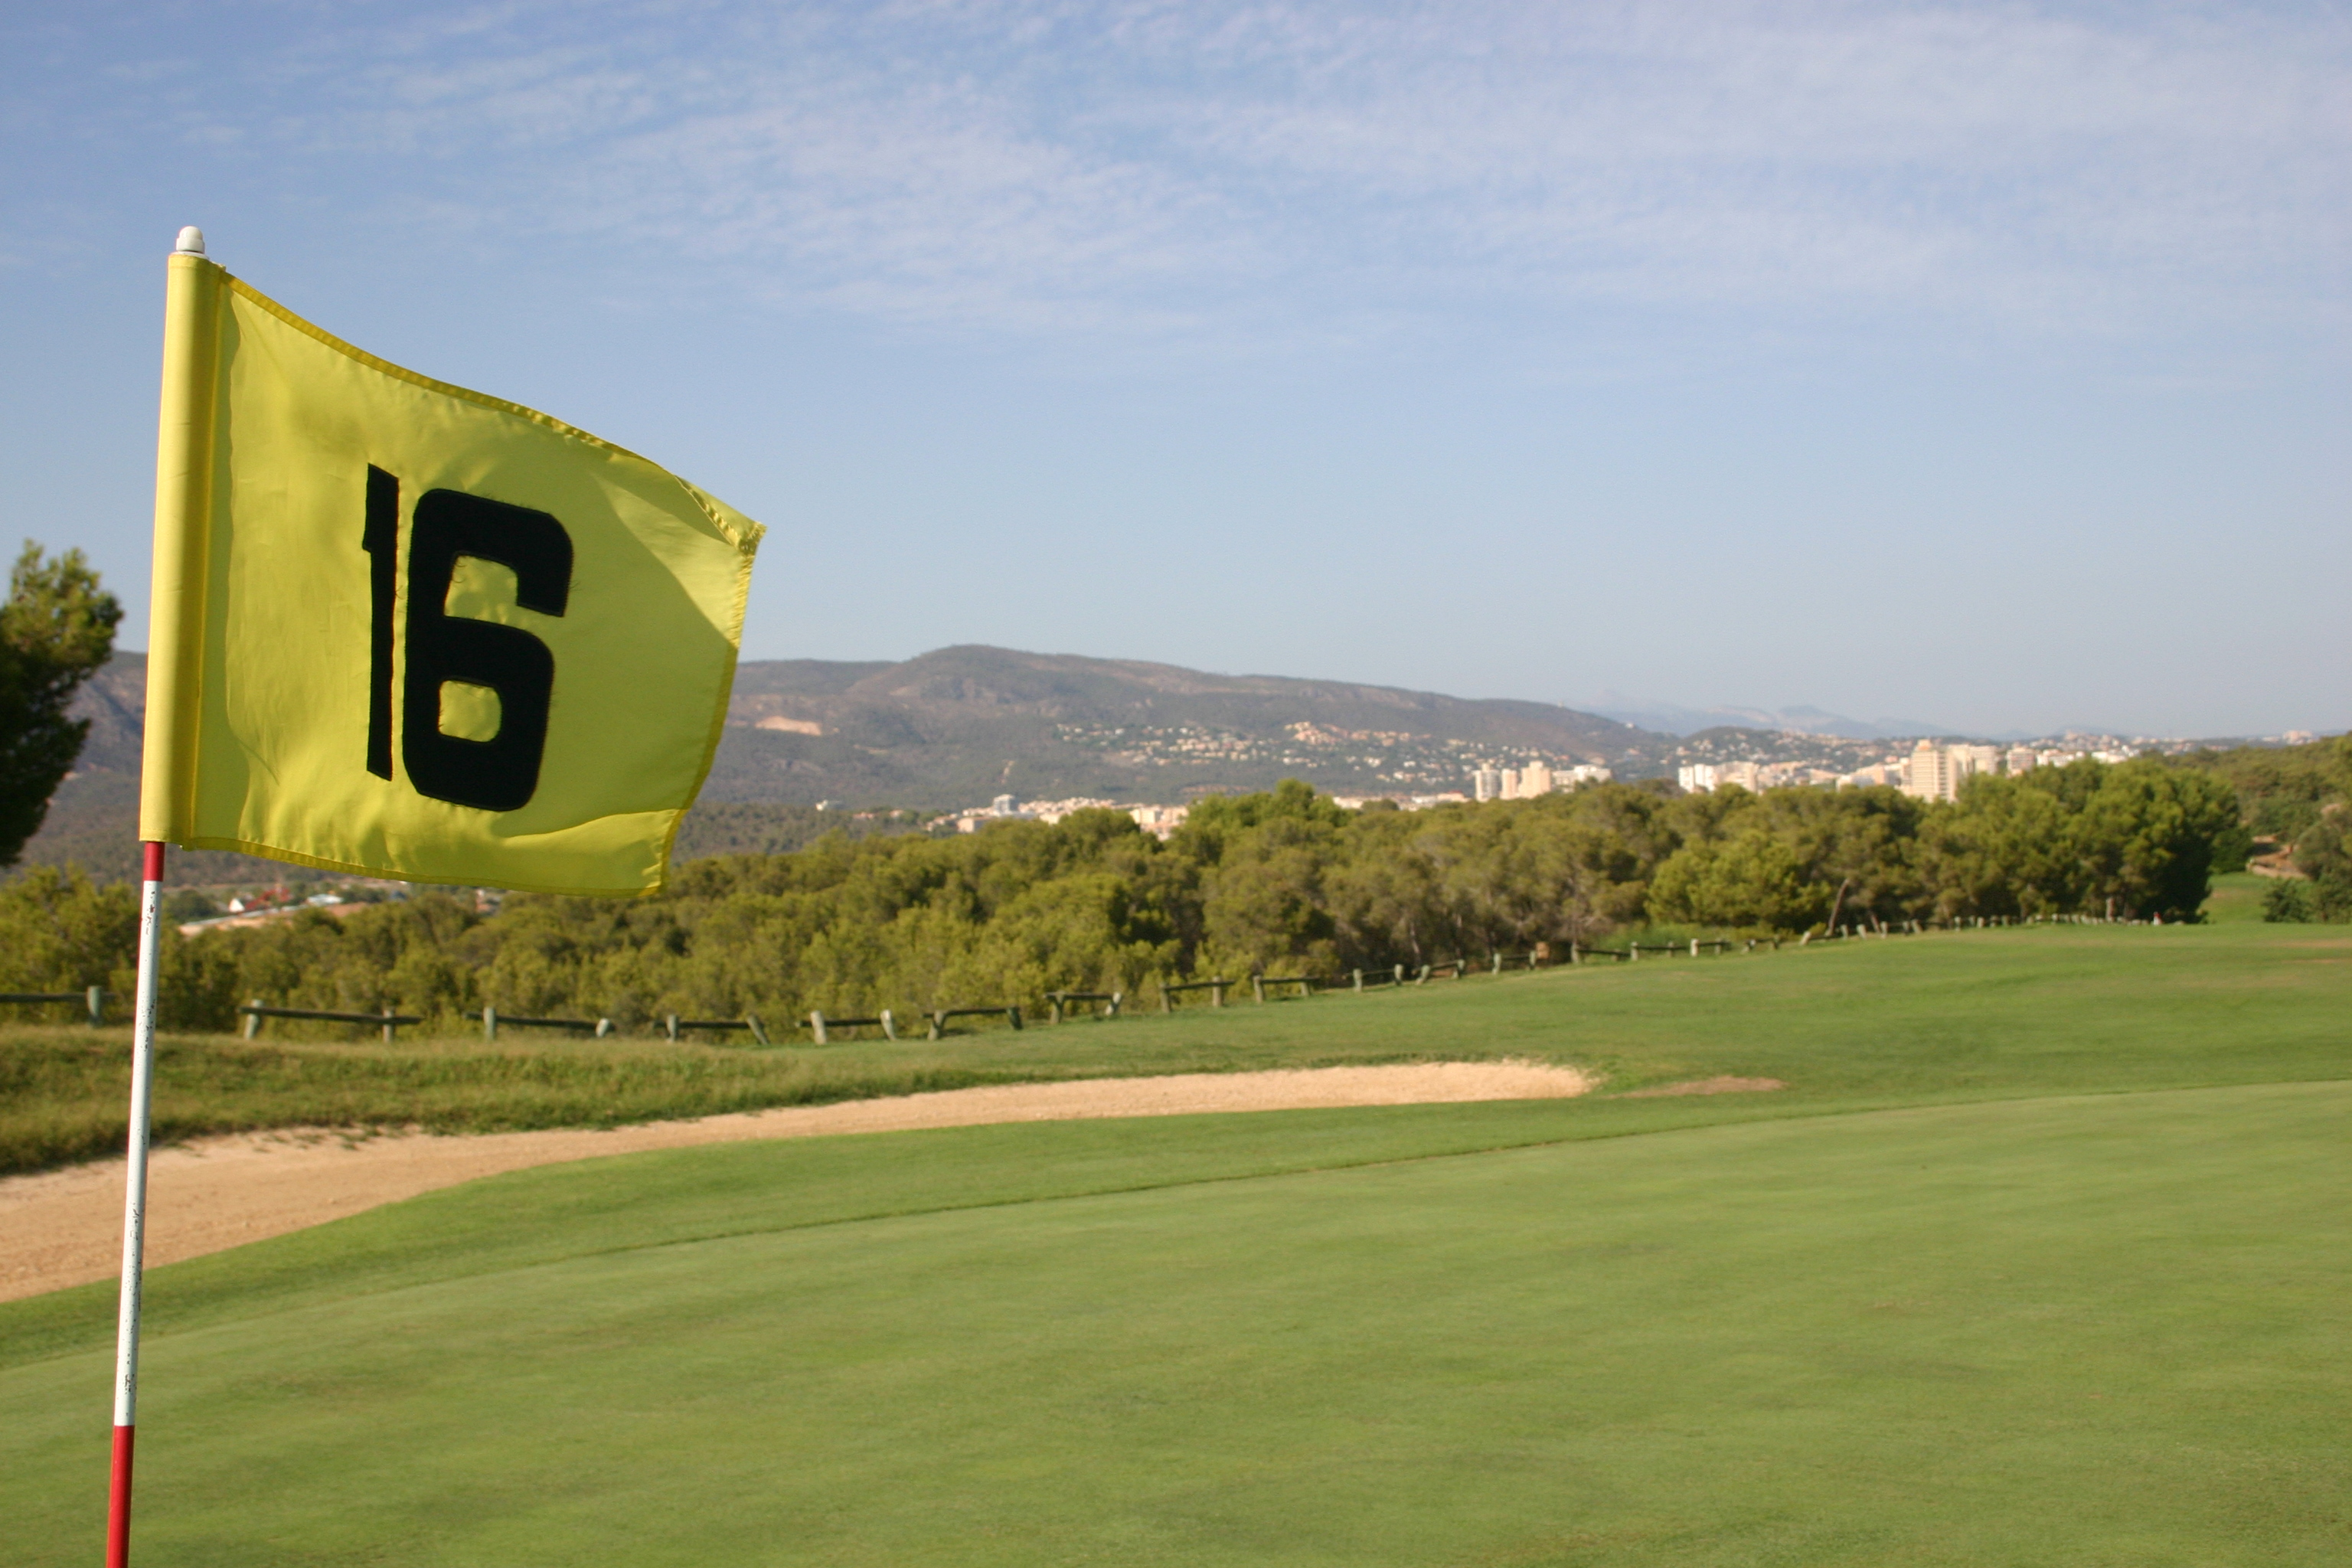 16th hole at Golf Poniente